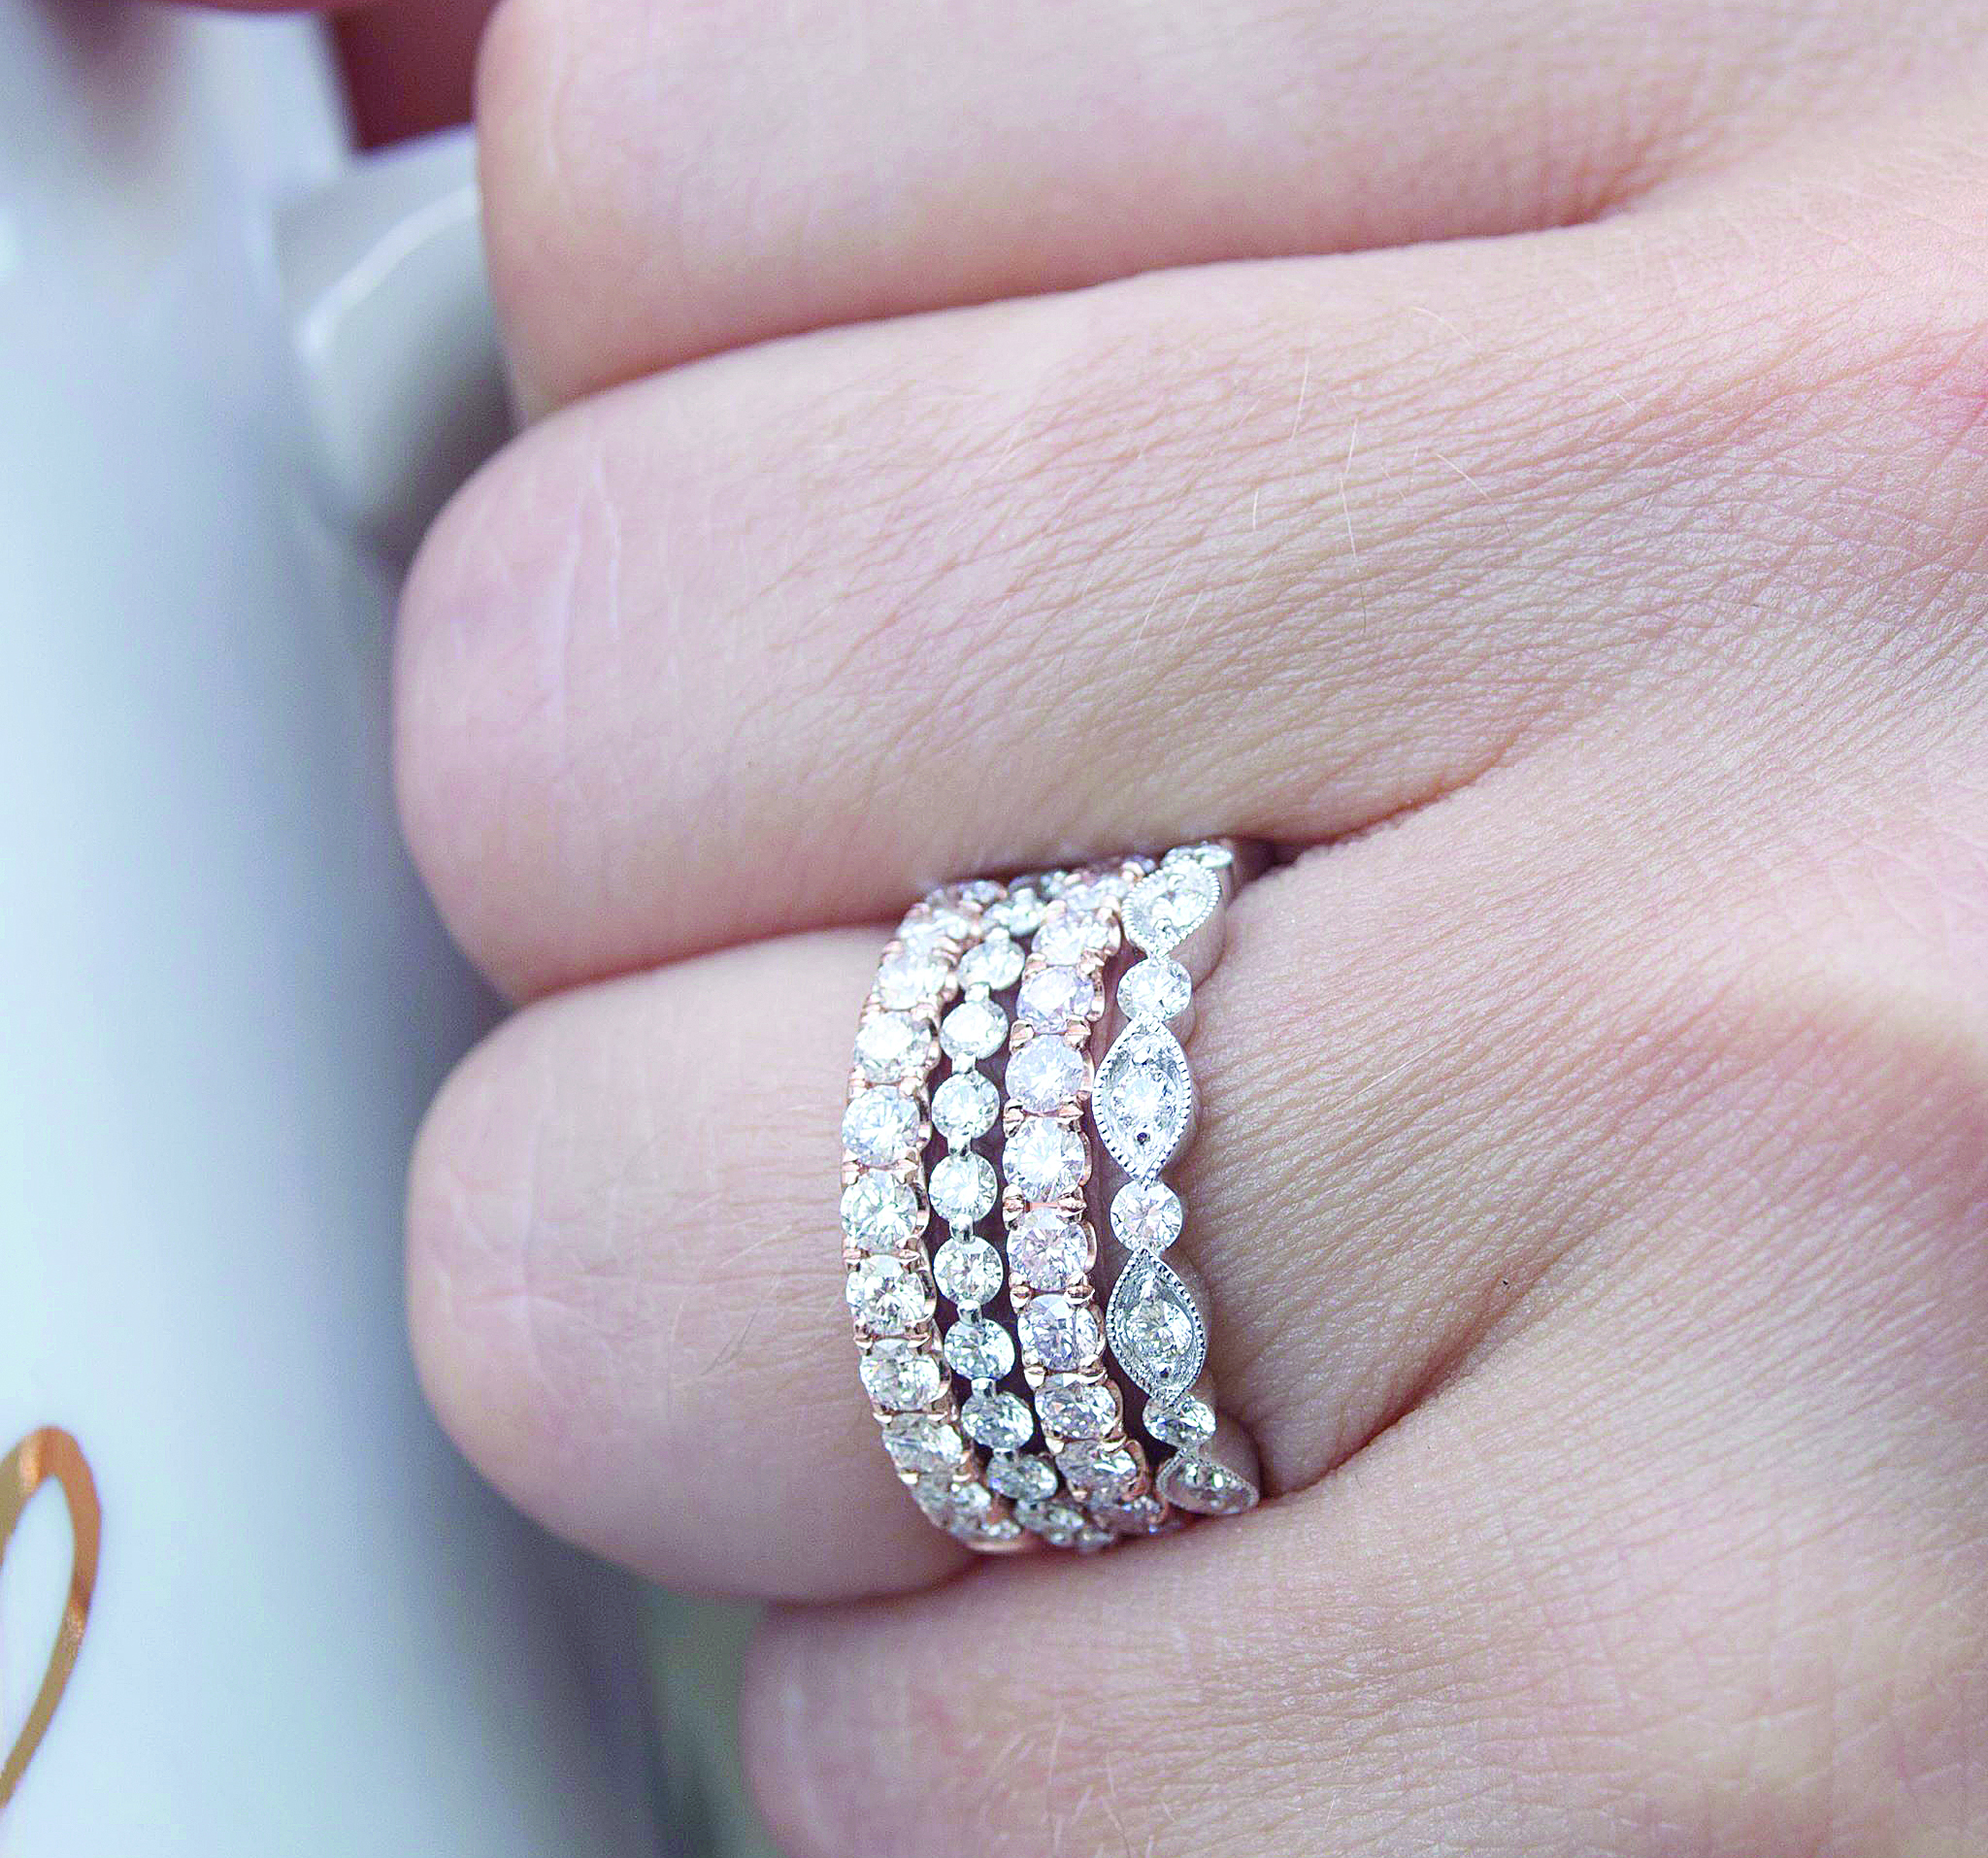 It is just a graphic of With This Ring Comes all That Sparkles - Atlanta Jewish Times